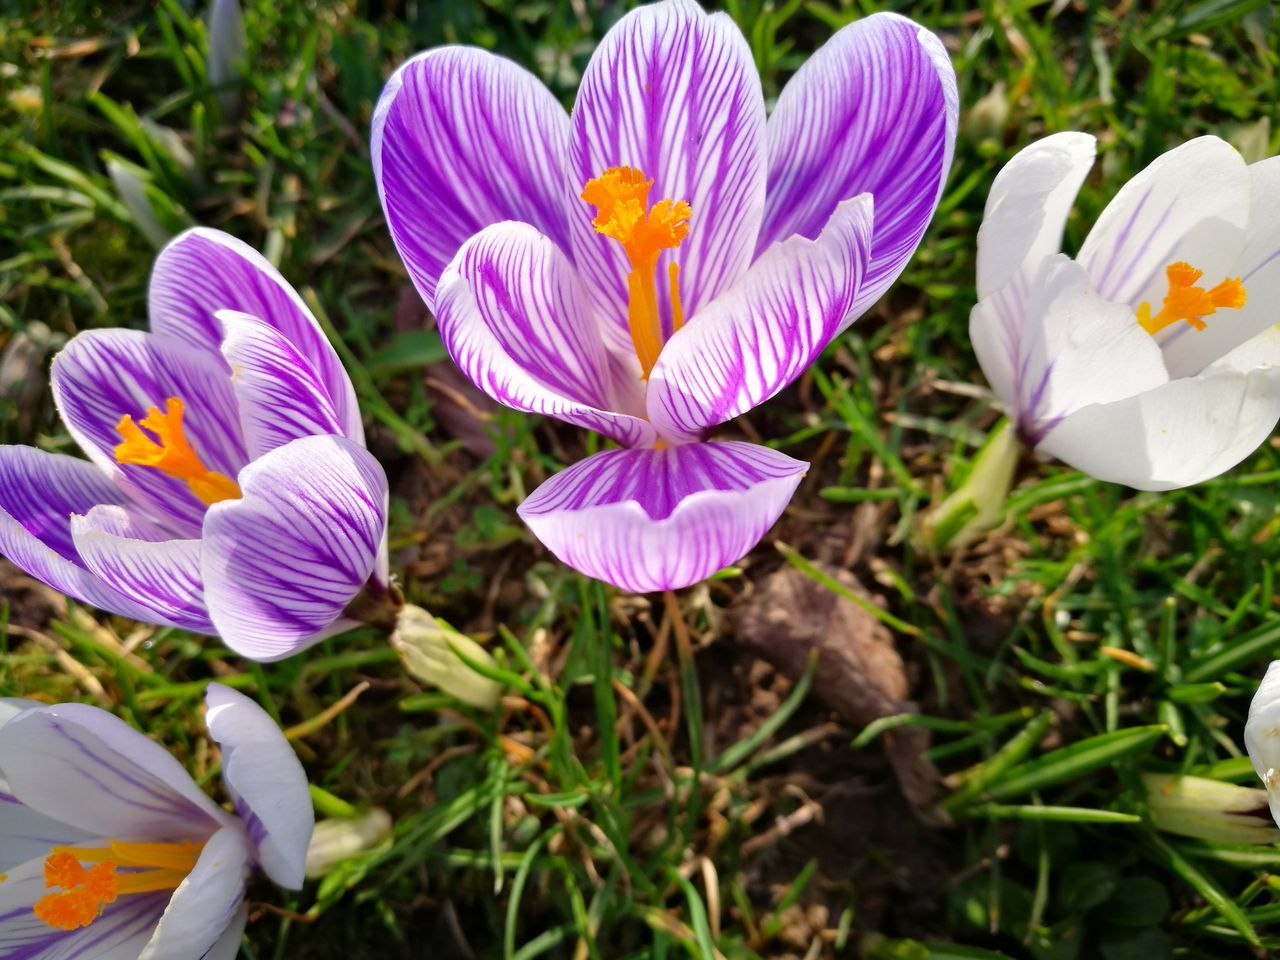 flower, petal, growth, plant, nature, flower head, fragility, beauty in nature, freshness, outdoors, day, no people, blooming, close-up, focus on foreground, field, purple, crocus, flowerbed